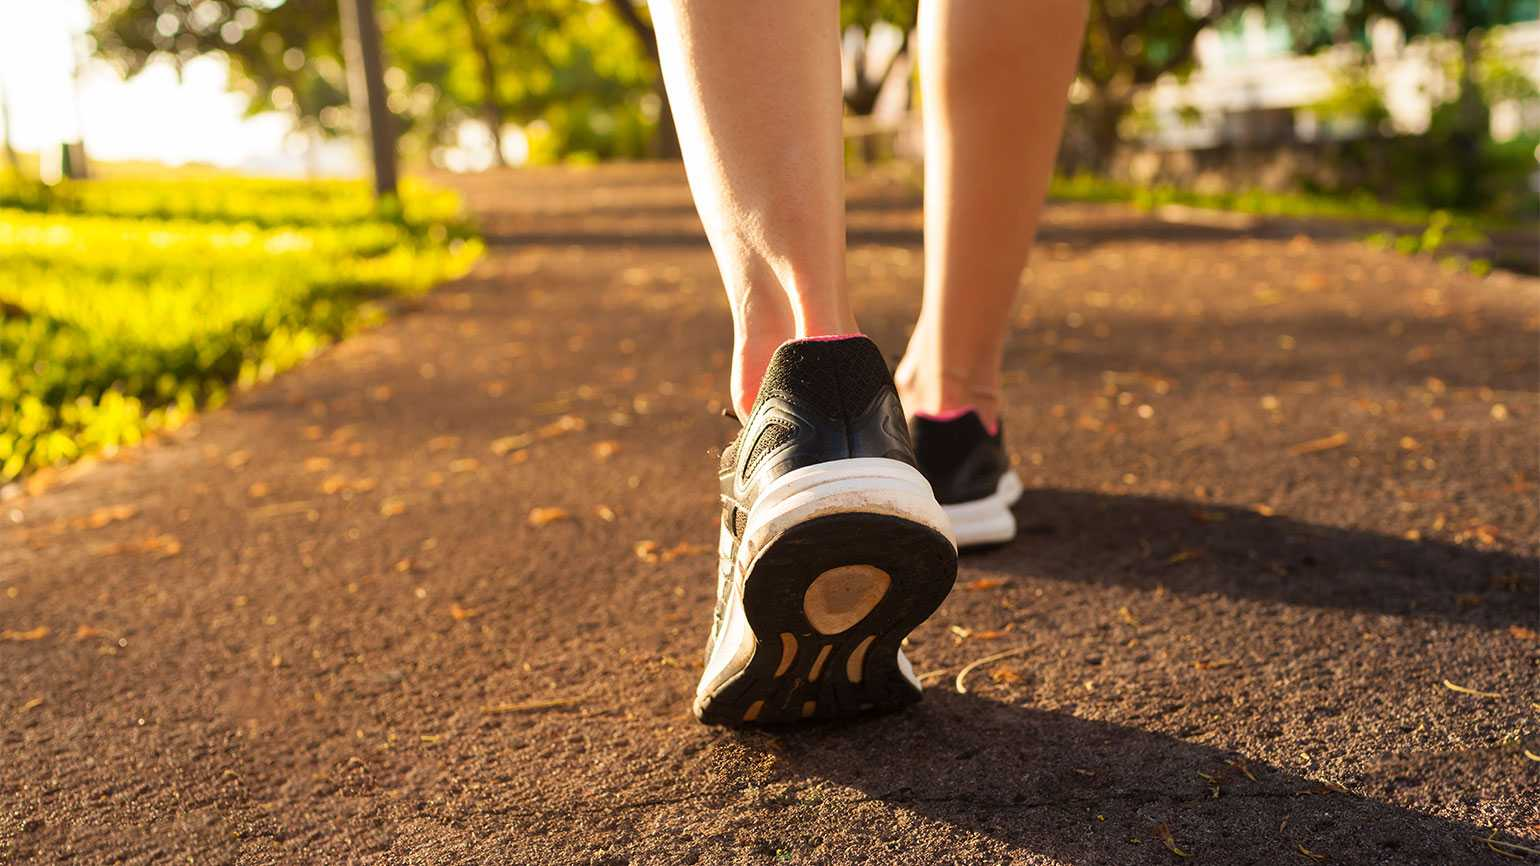 A close-up of a woman's sneakers as she takes a healthy walk in the park